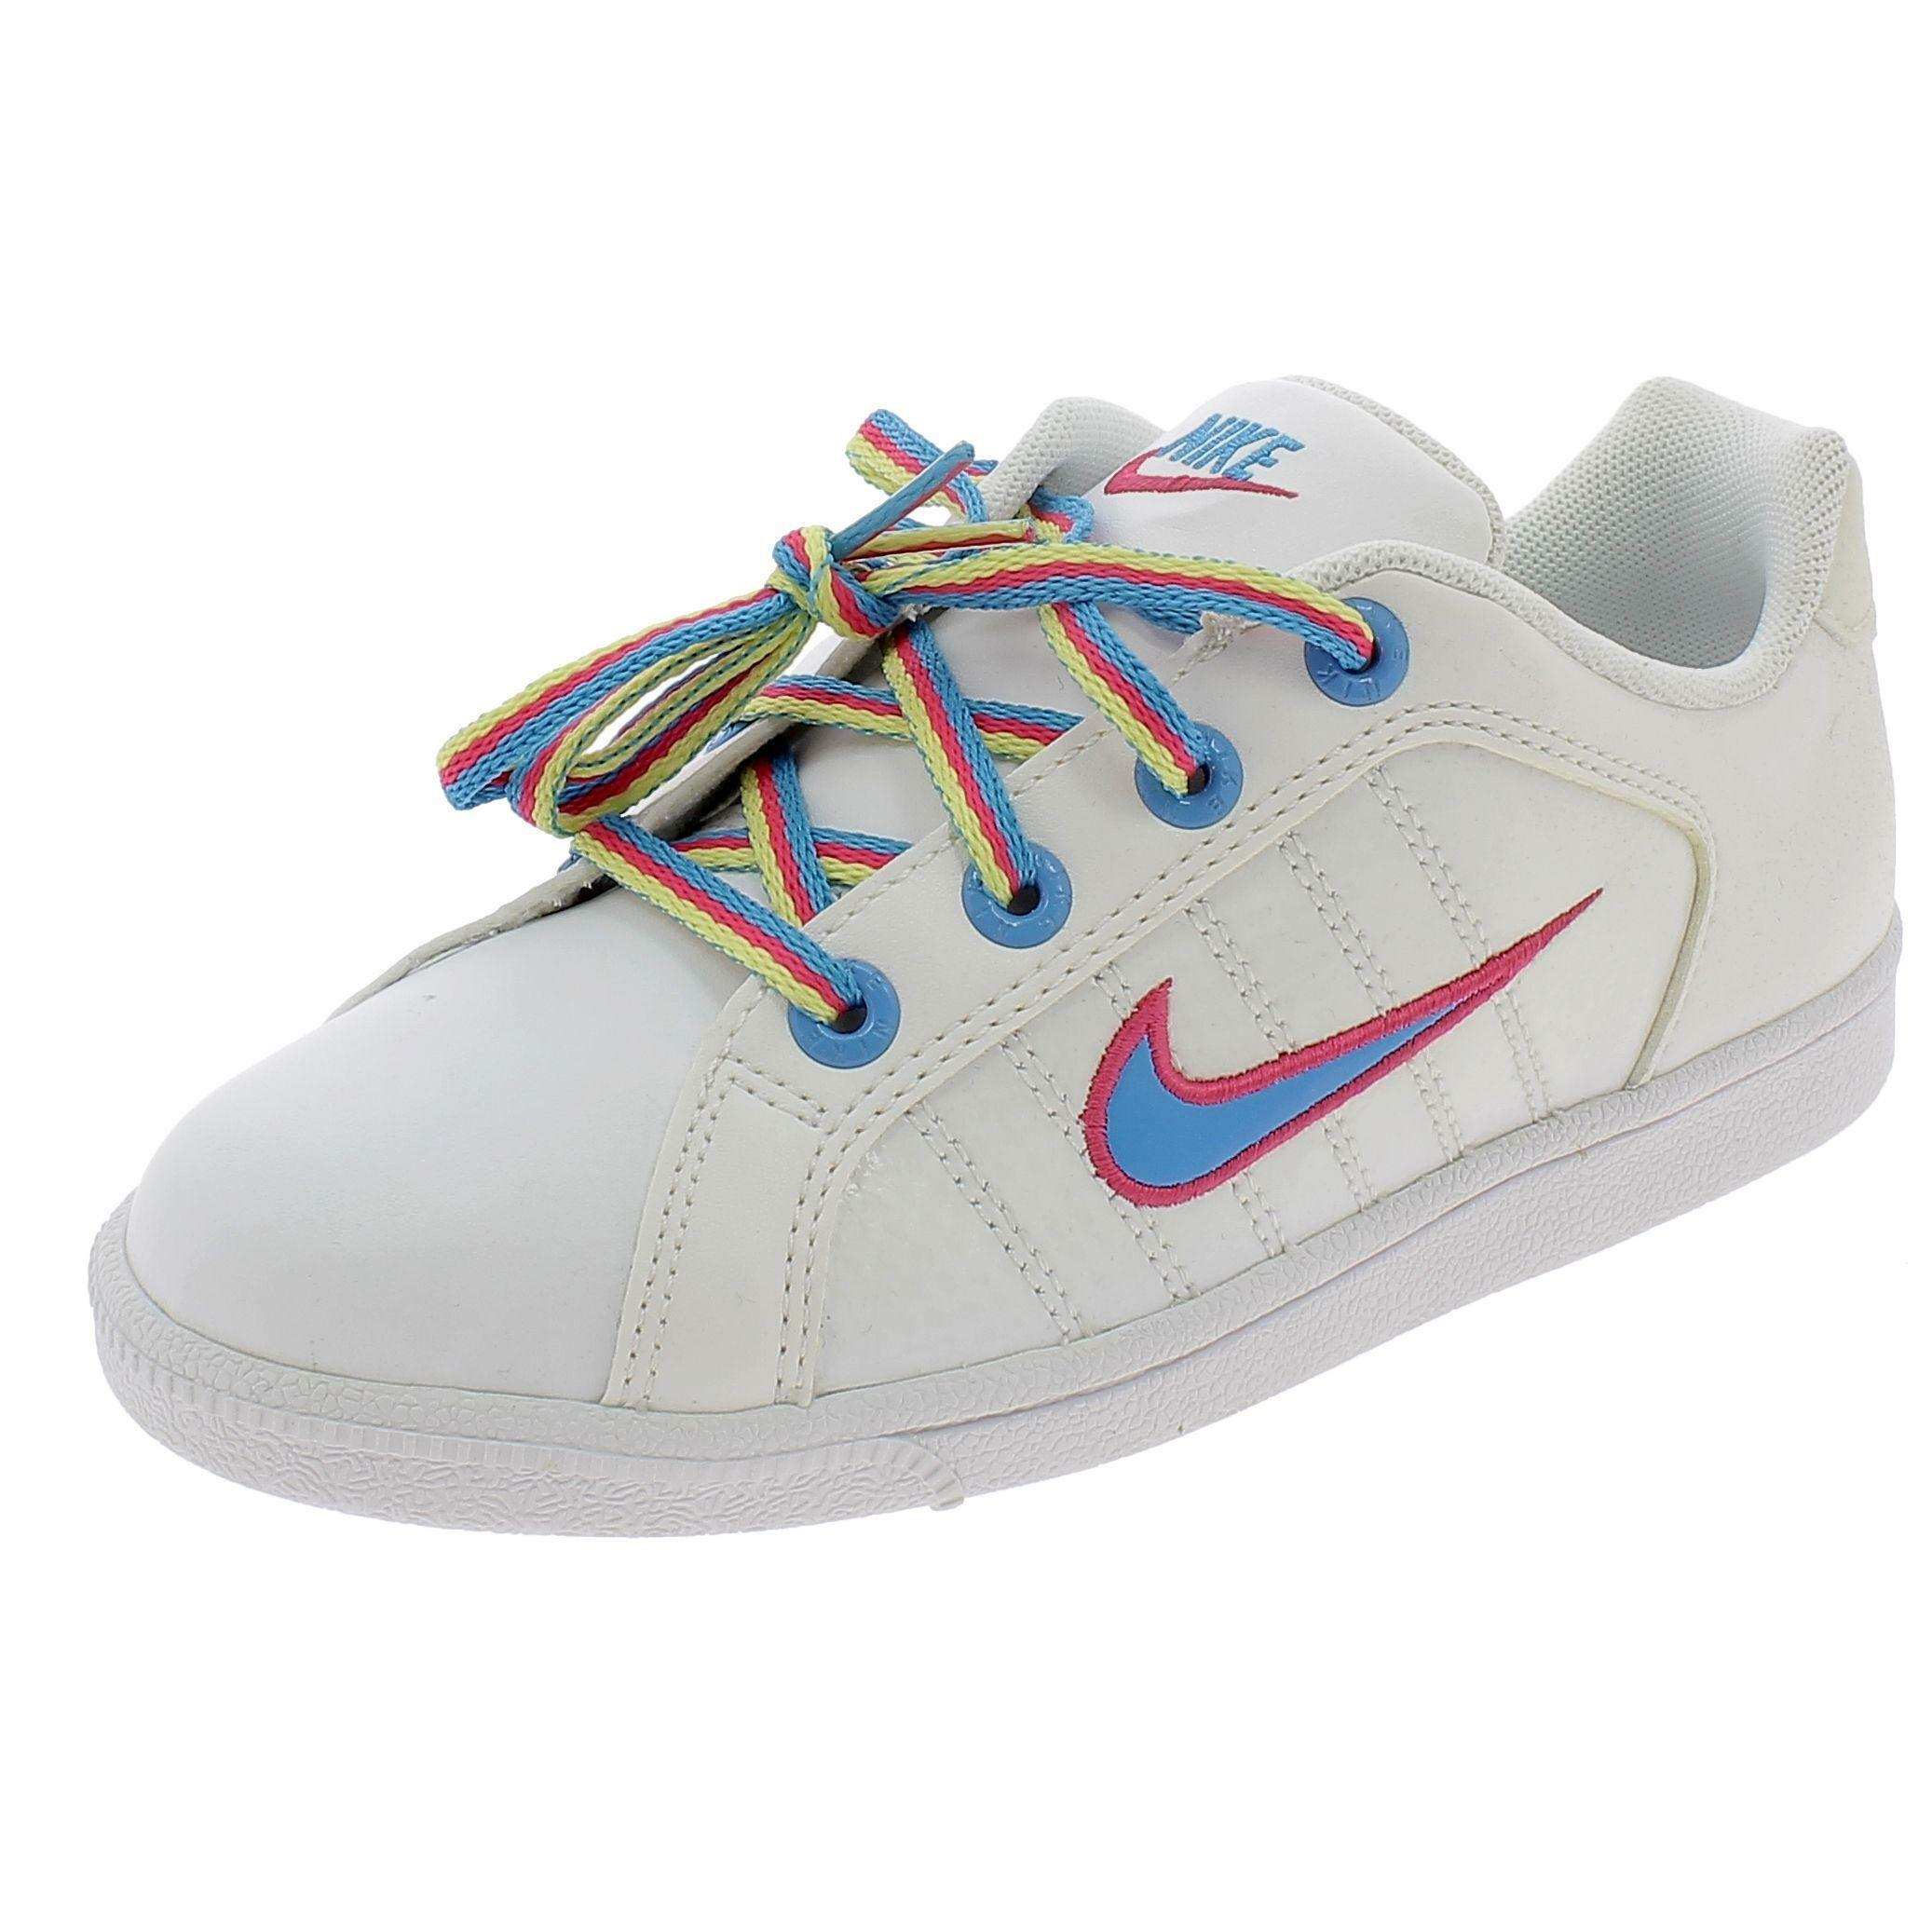 nike court tradition 2 plus (ps) scarpe bambina bianche pelle 386623